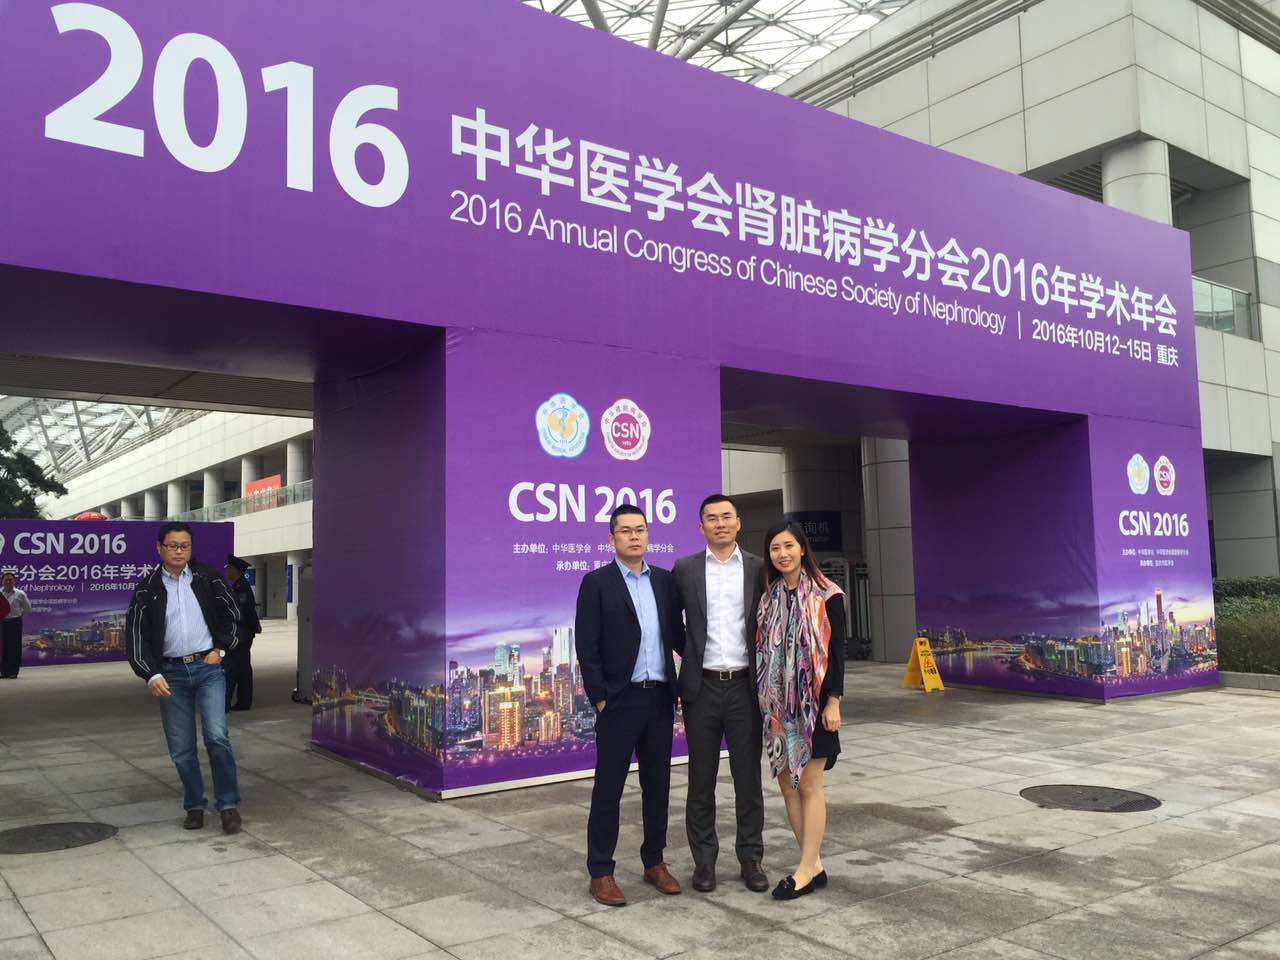 Tianyi Medical Attended the 2016 Annual Congress of Chinese Society of Nephrology